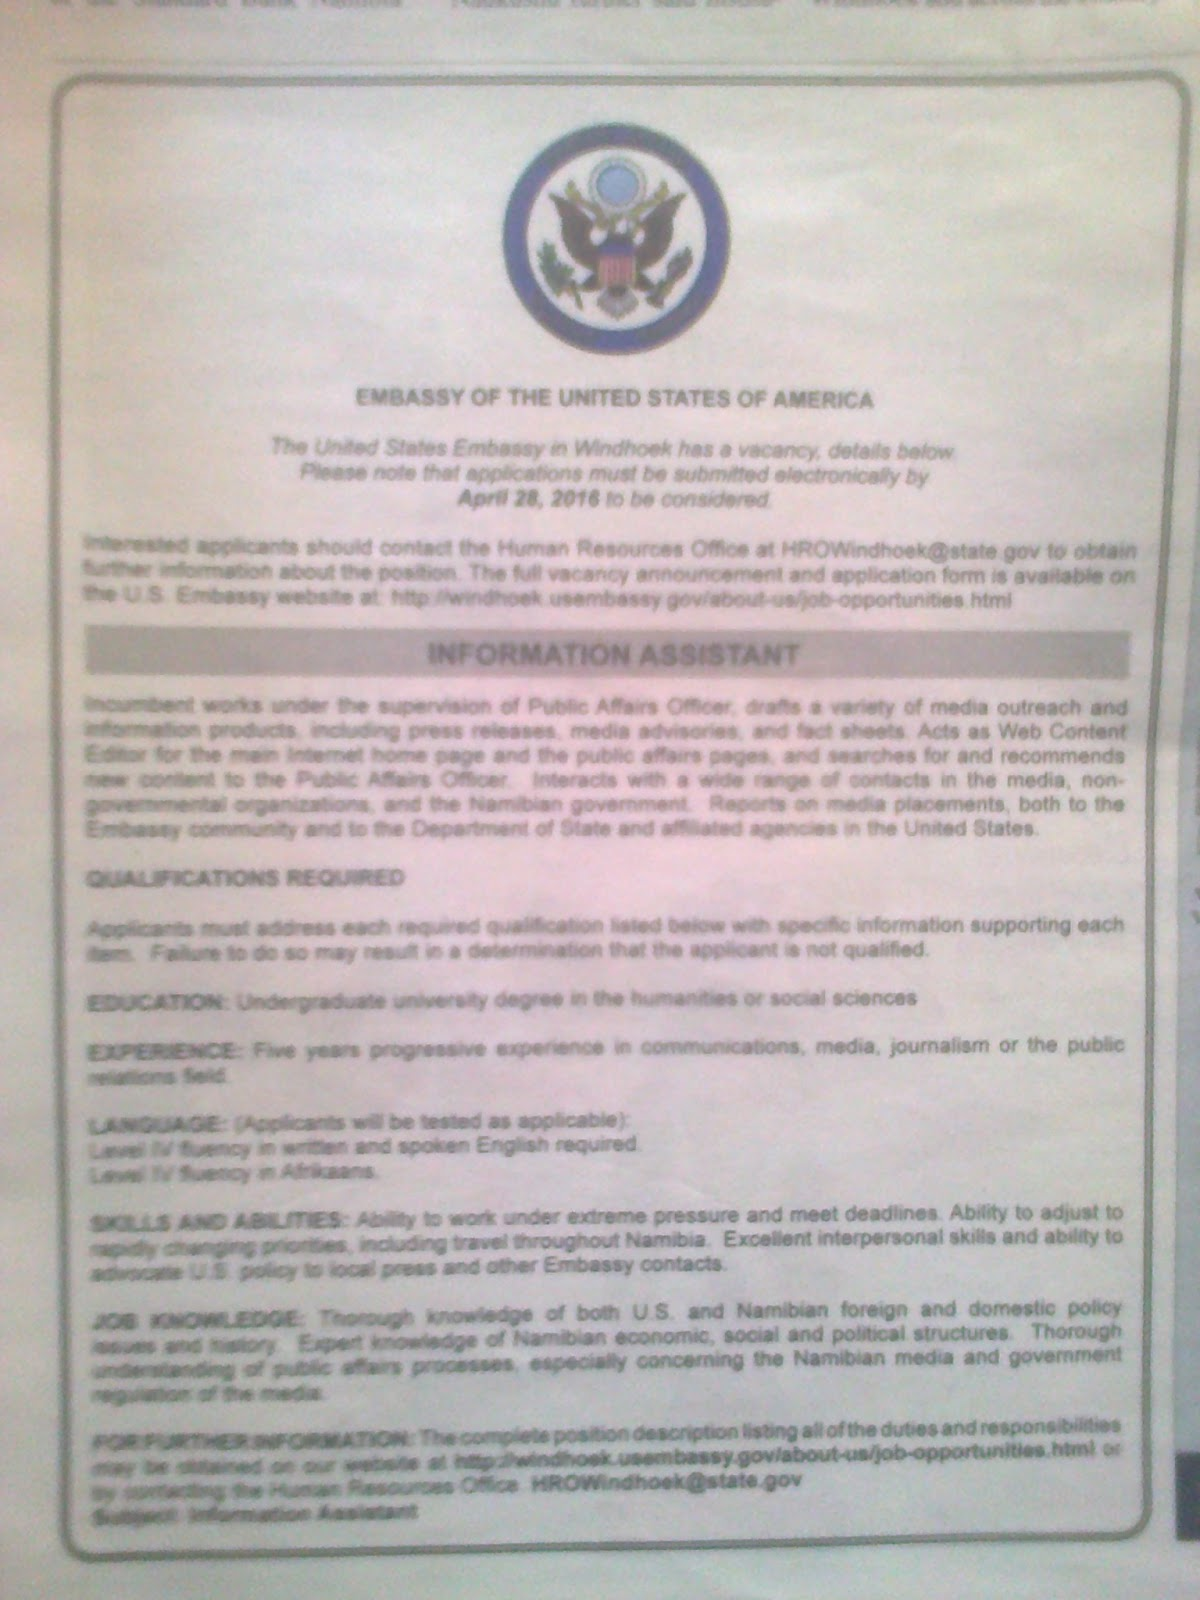 Jobs in Namibia: Vacancies - Information Assistant - The US Embassy